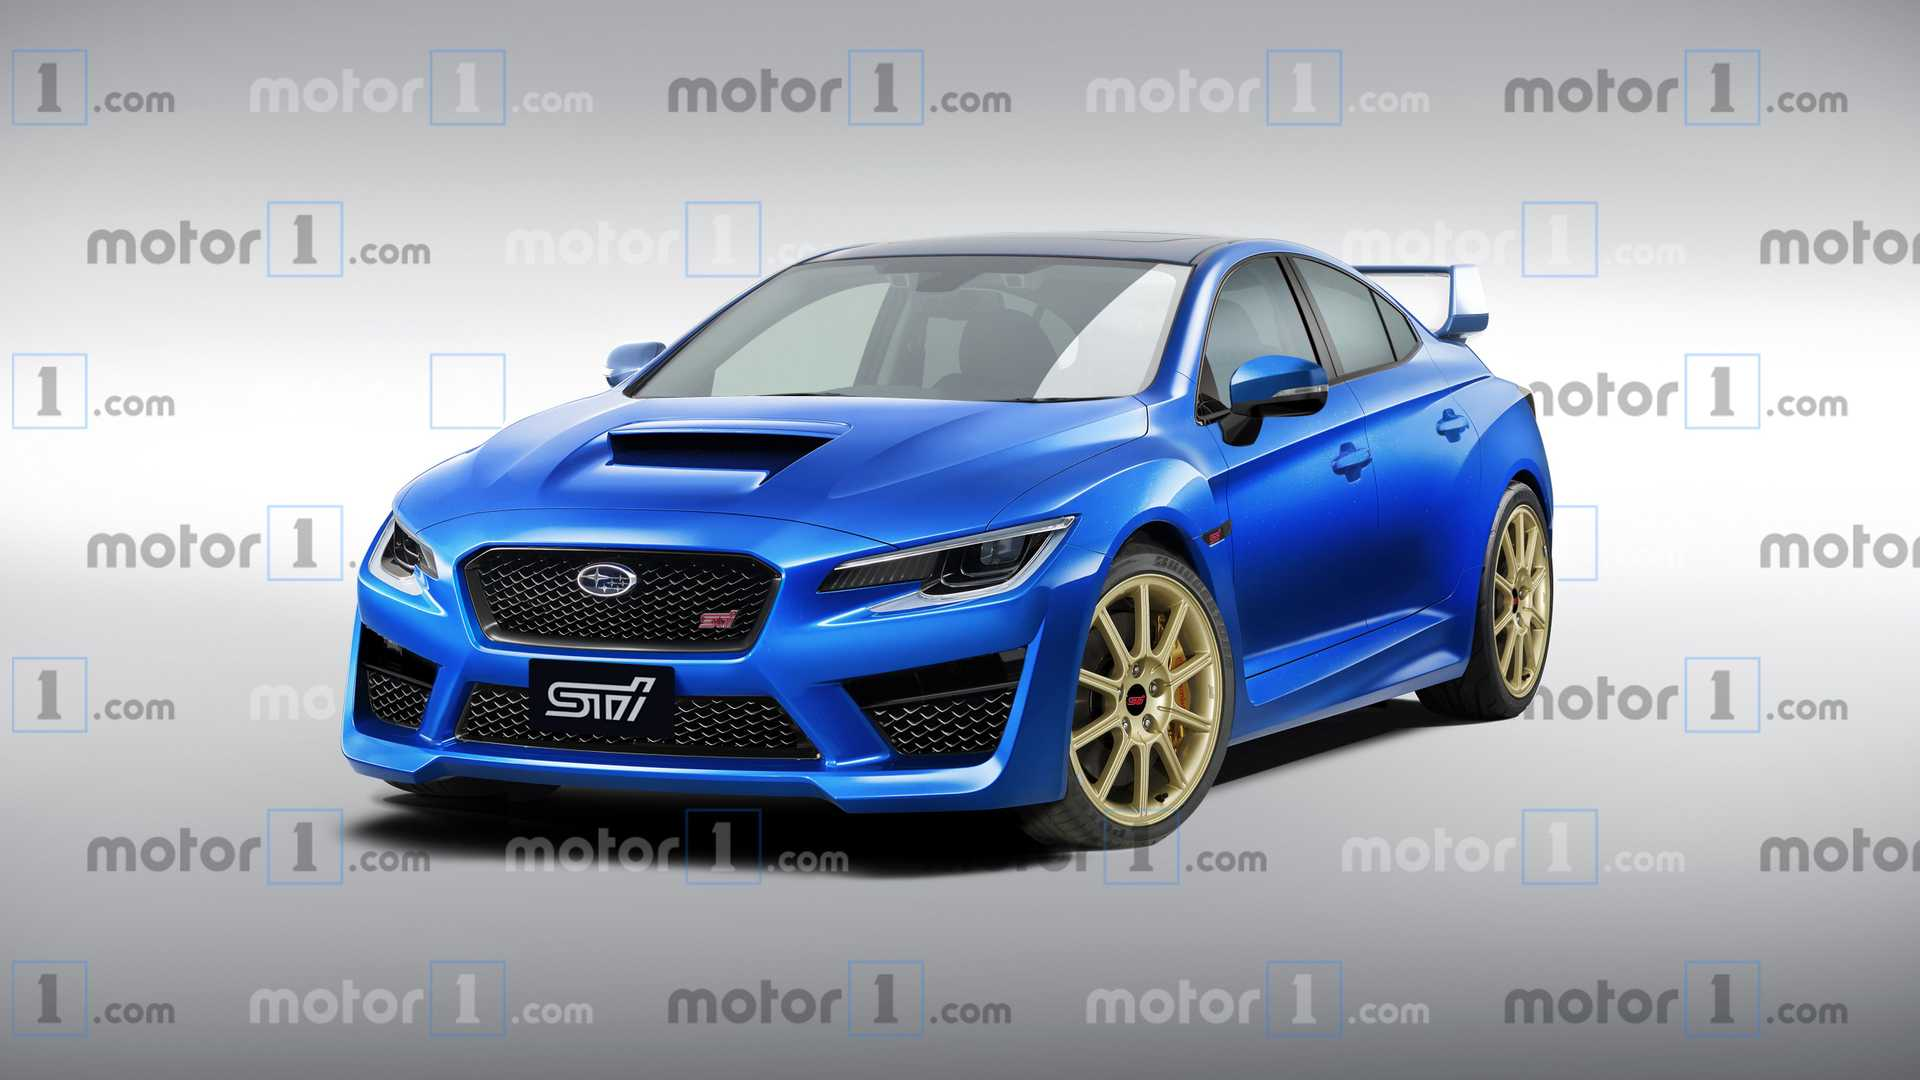 71 Gallery of 2020 Subaru Sti Engine Specs by 2020 Subaru Sti Engine